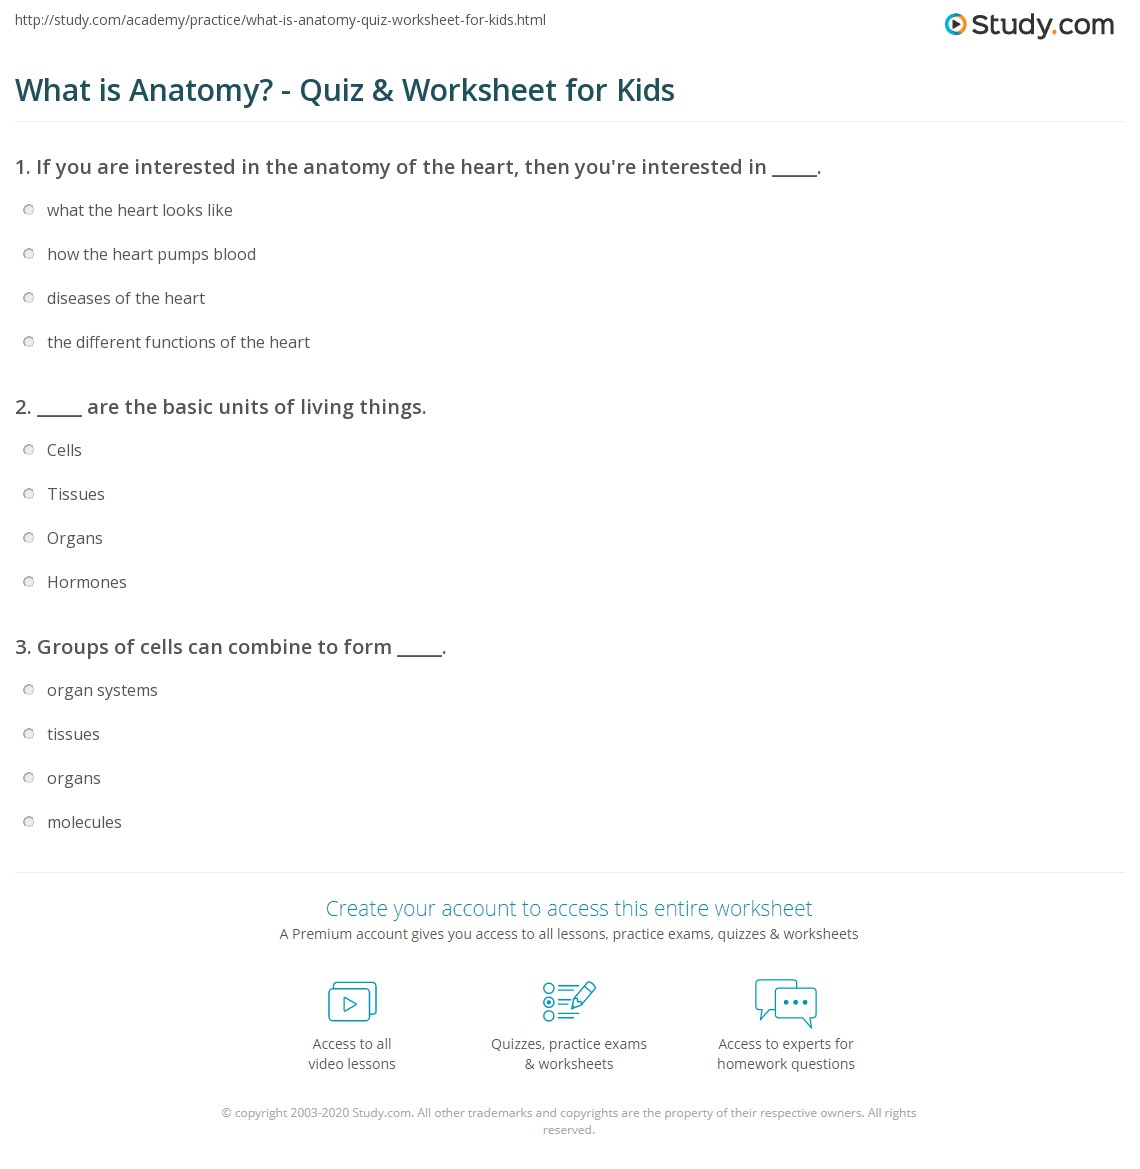 What is Anatomy? - Quiz & Worksheet for Kids | Study.com